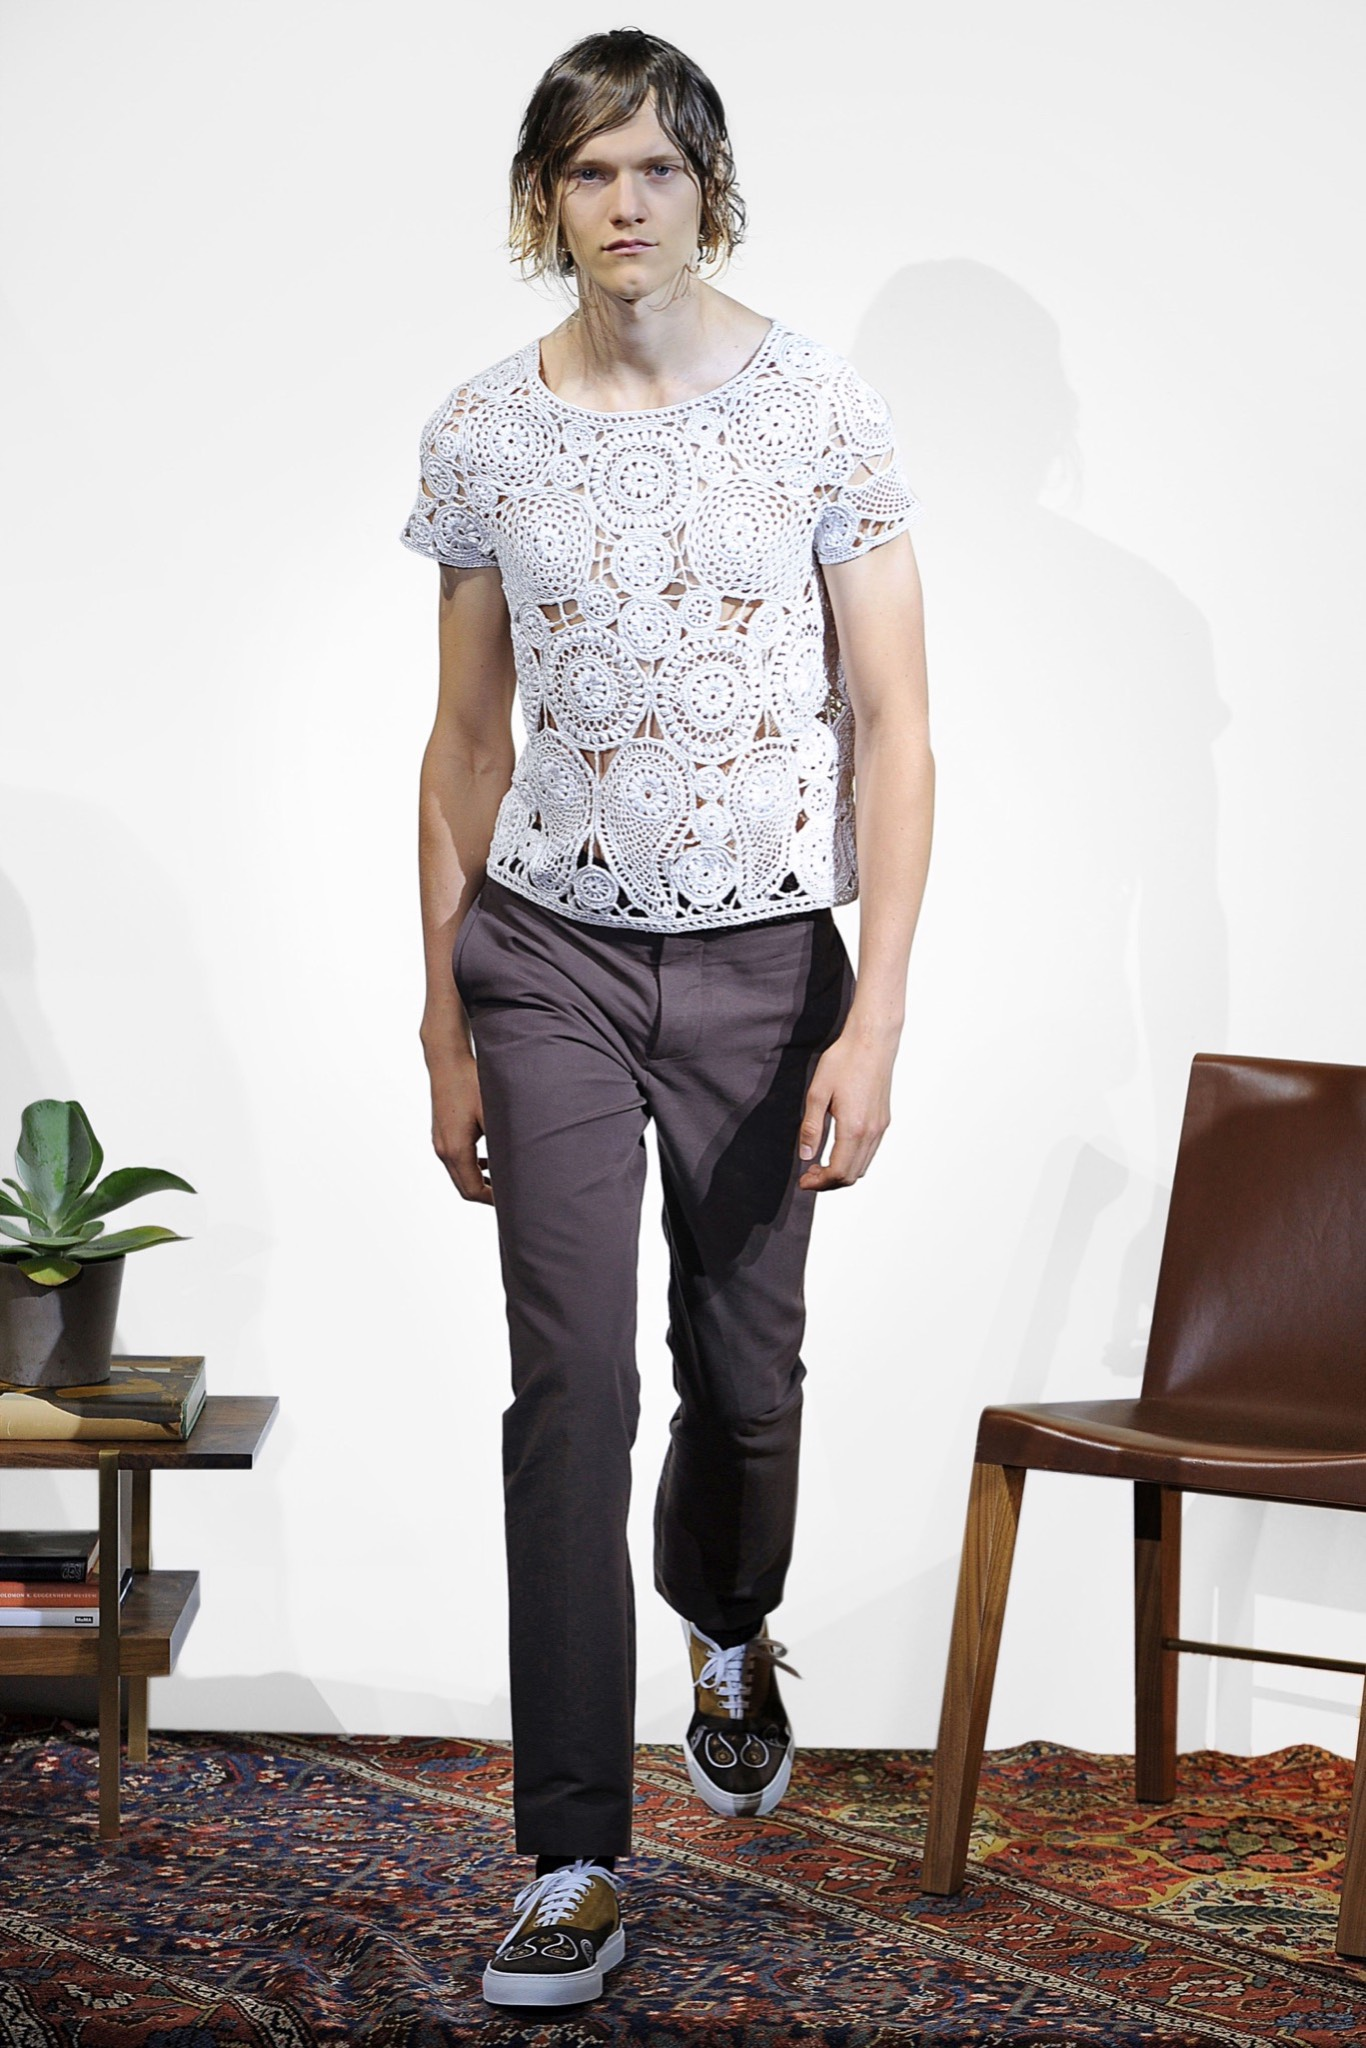 orley, nyfwm, new york fashion week, new york fashion week mens, ss16